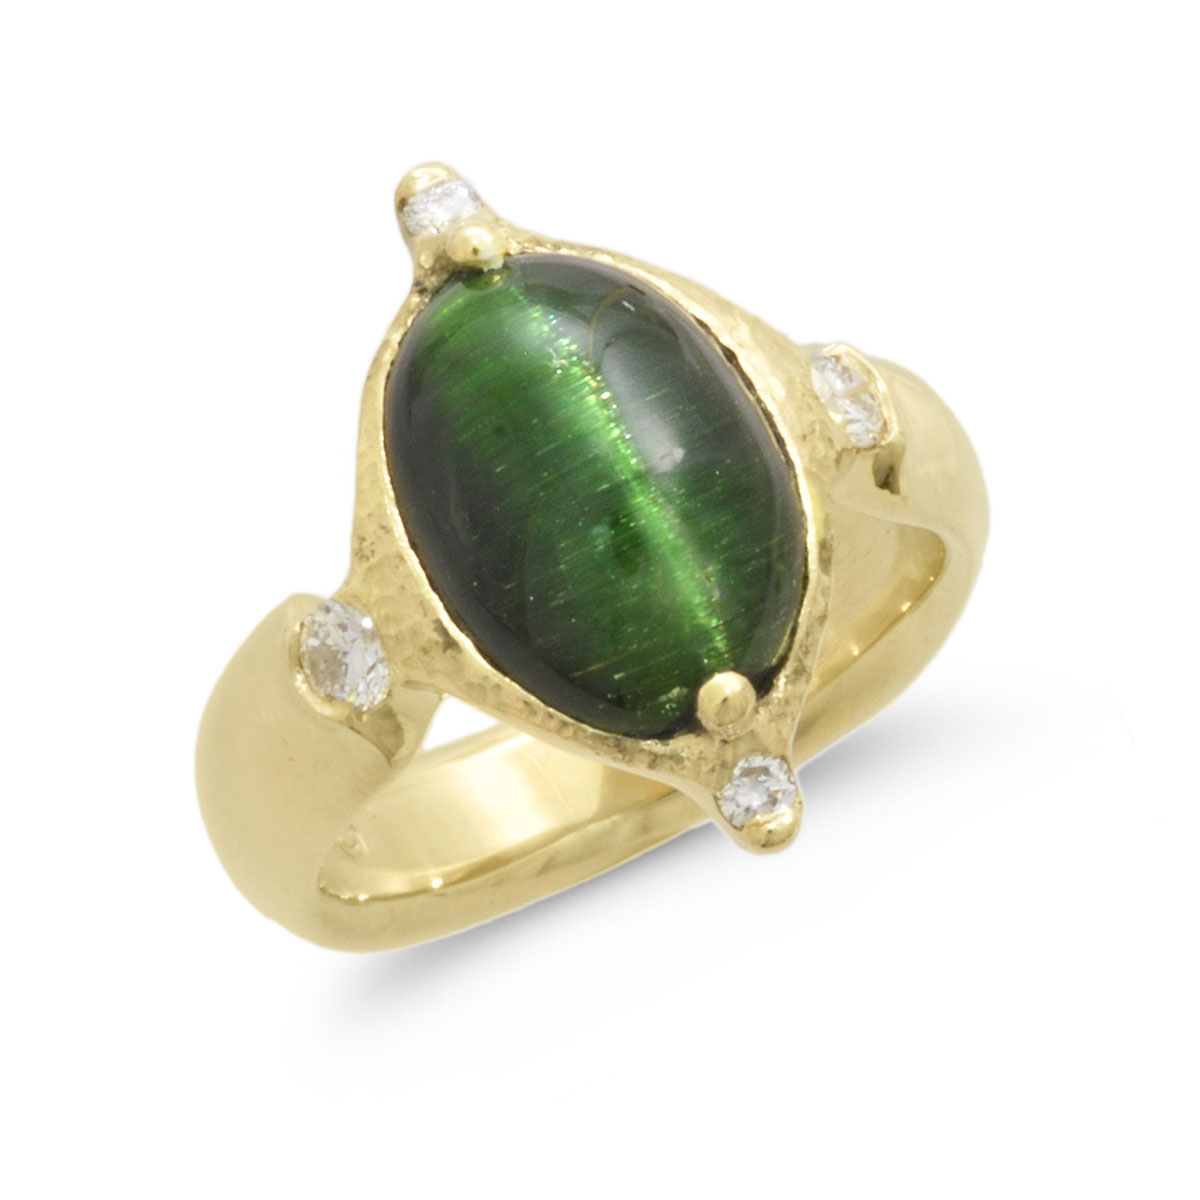 IND0985 Cat's Eye Tourmaline Ring